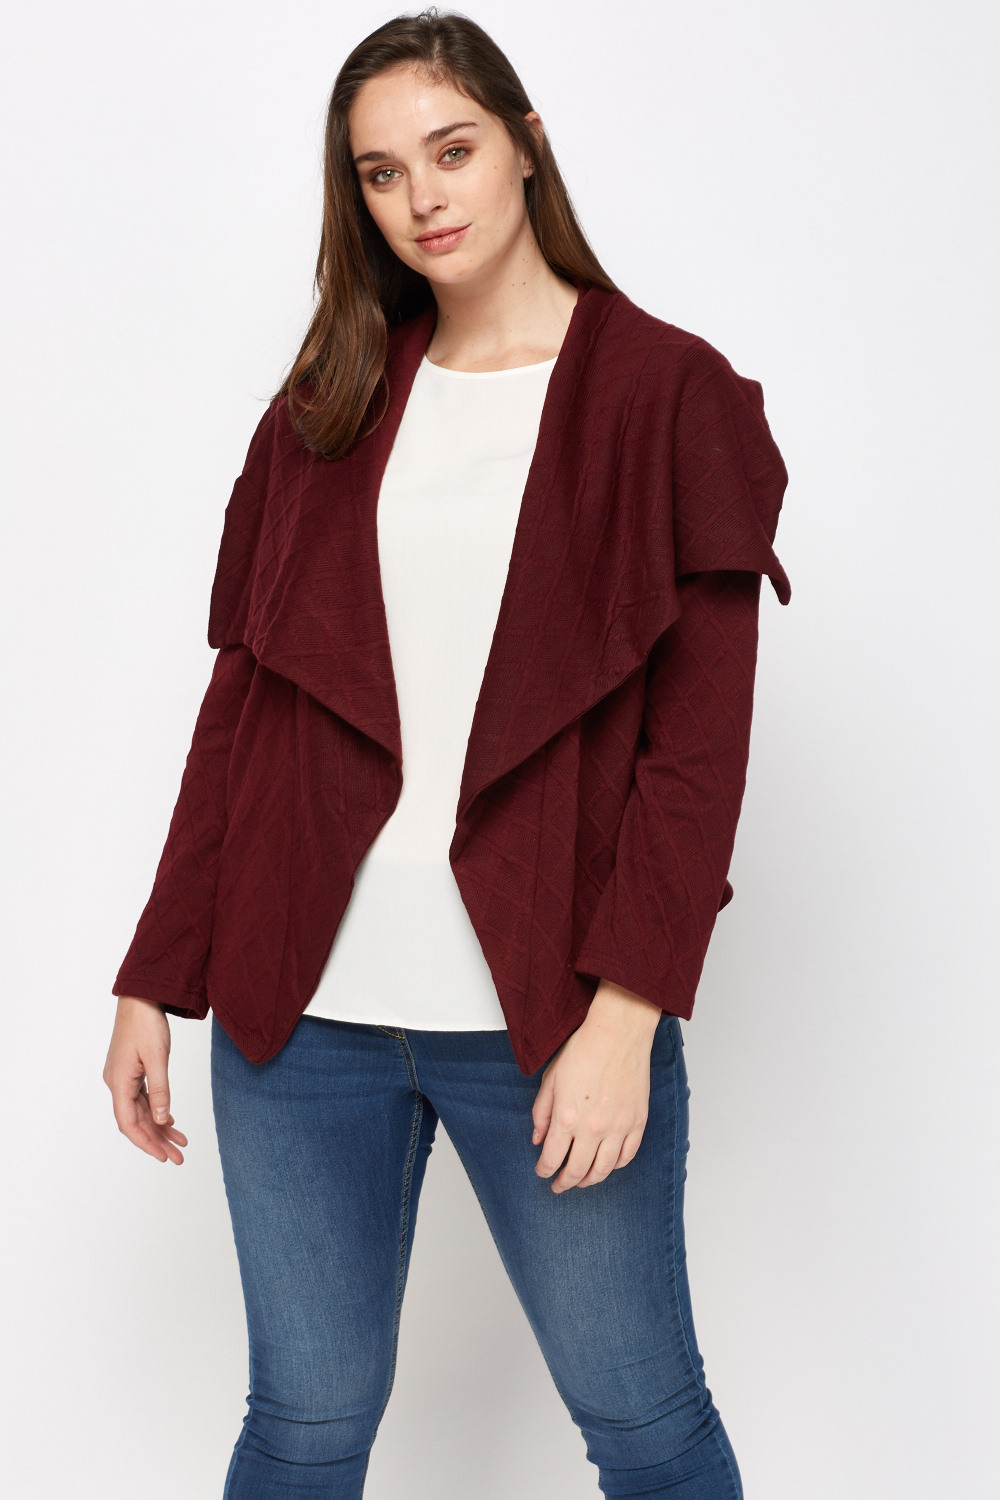 Textured Waterfall Cardigan - 4 Colours - Just £5